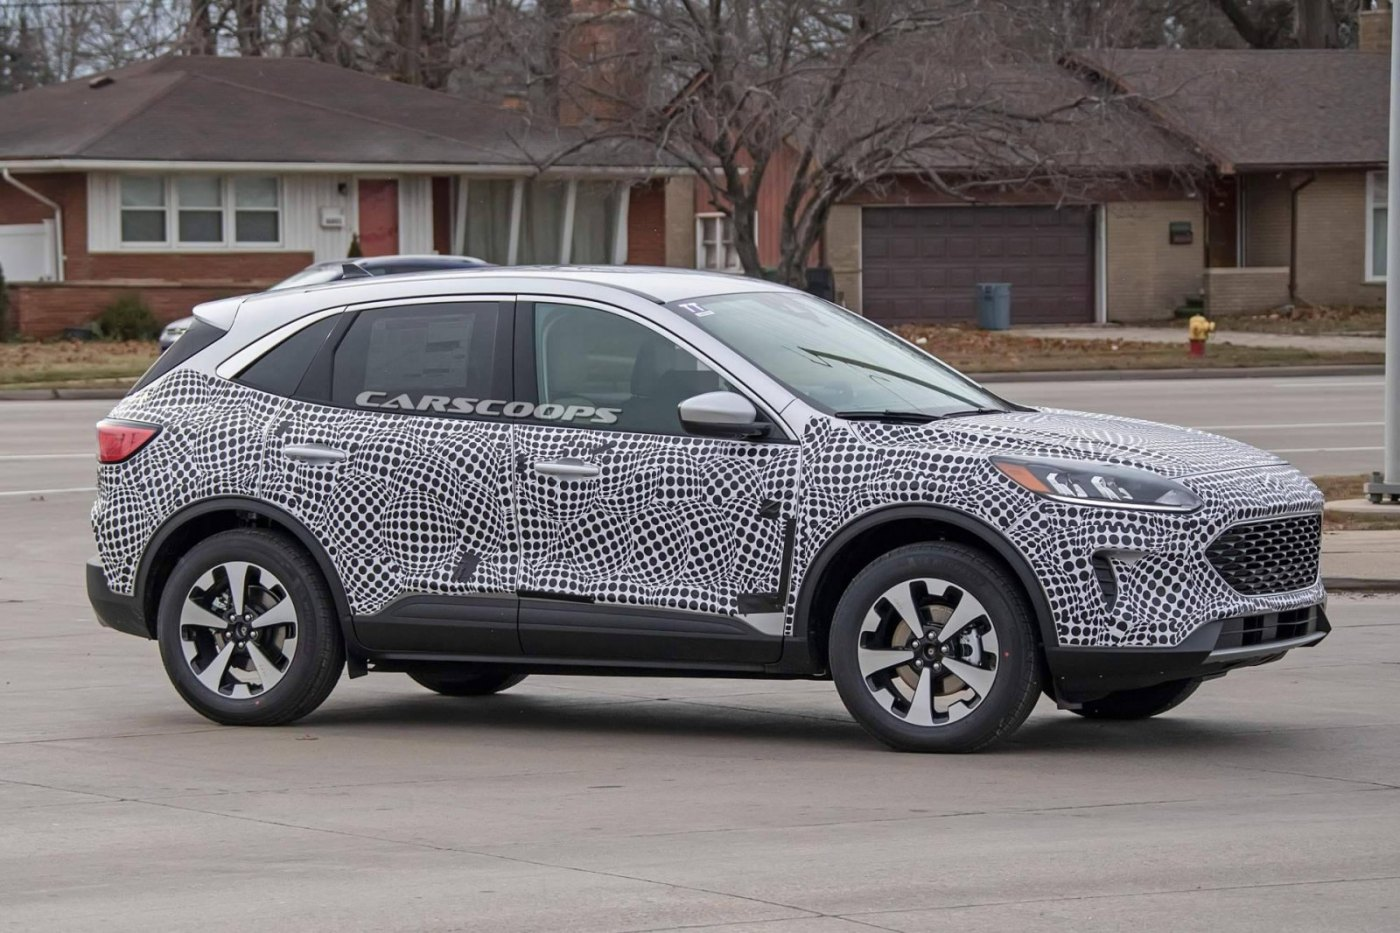 2019 Ford Escape:Kuga_1.jpg